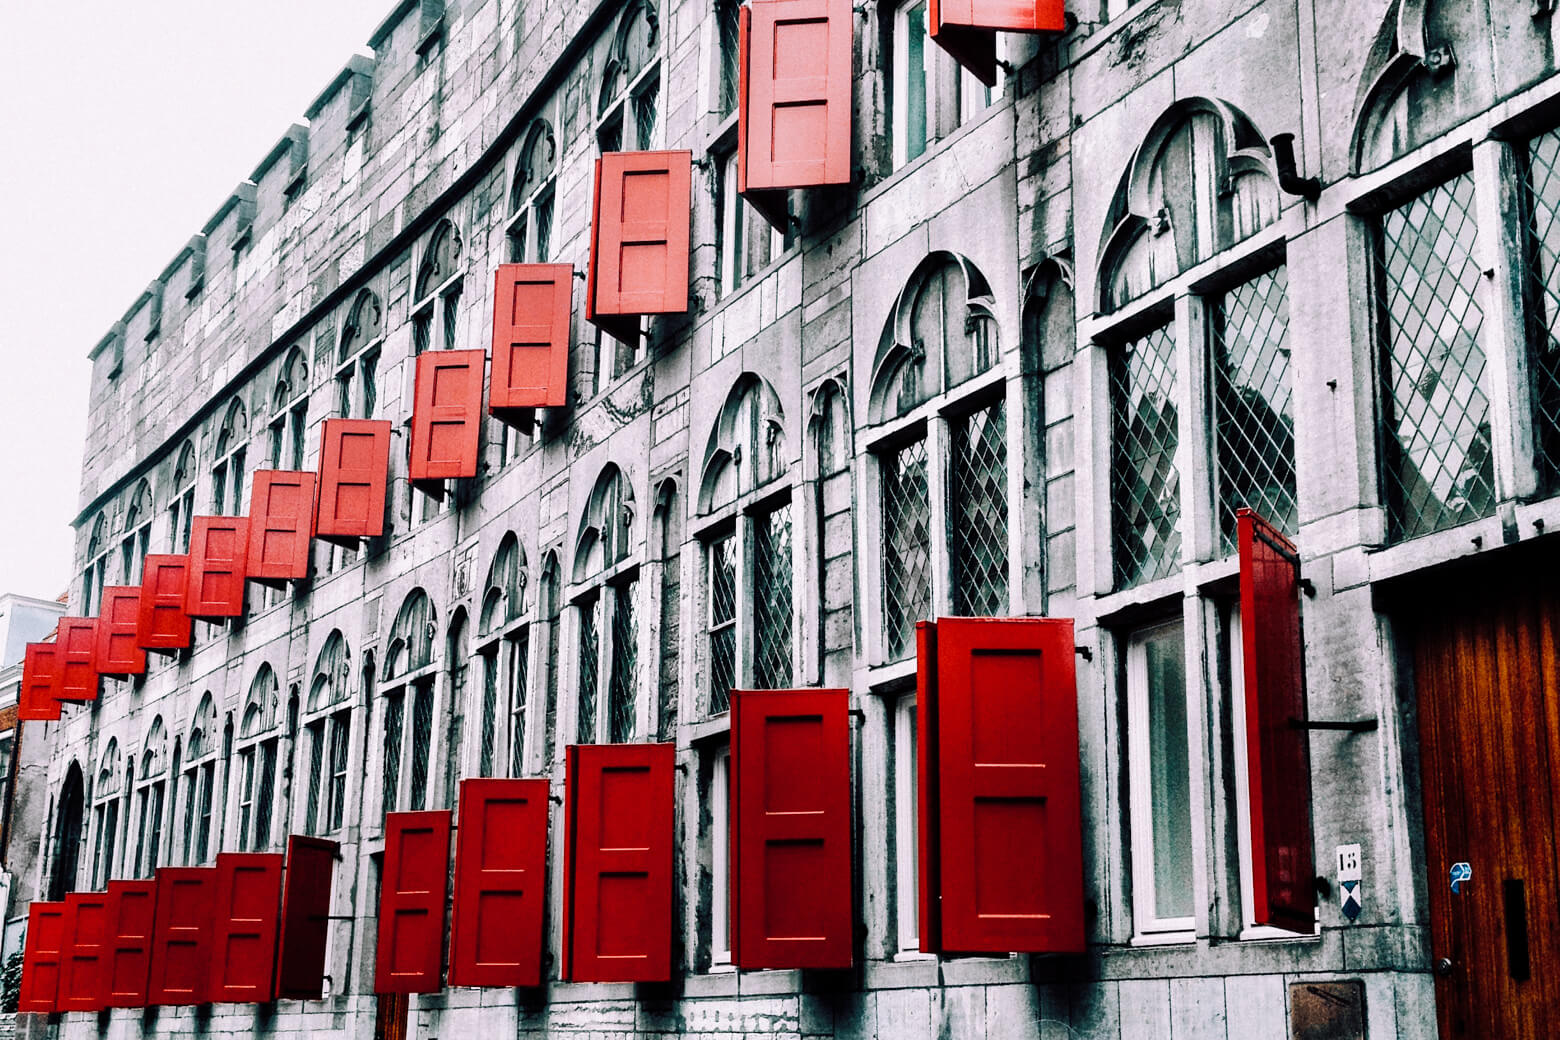 Utrecht Red Shutters